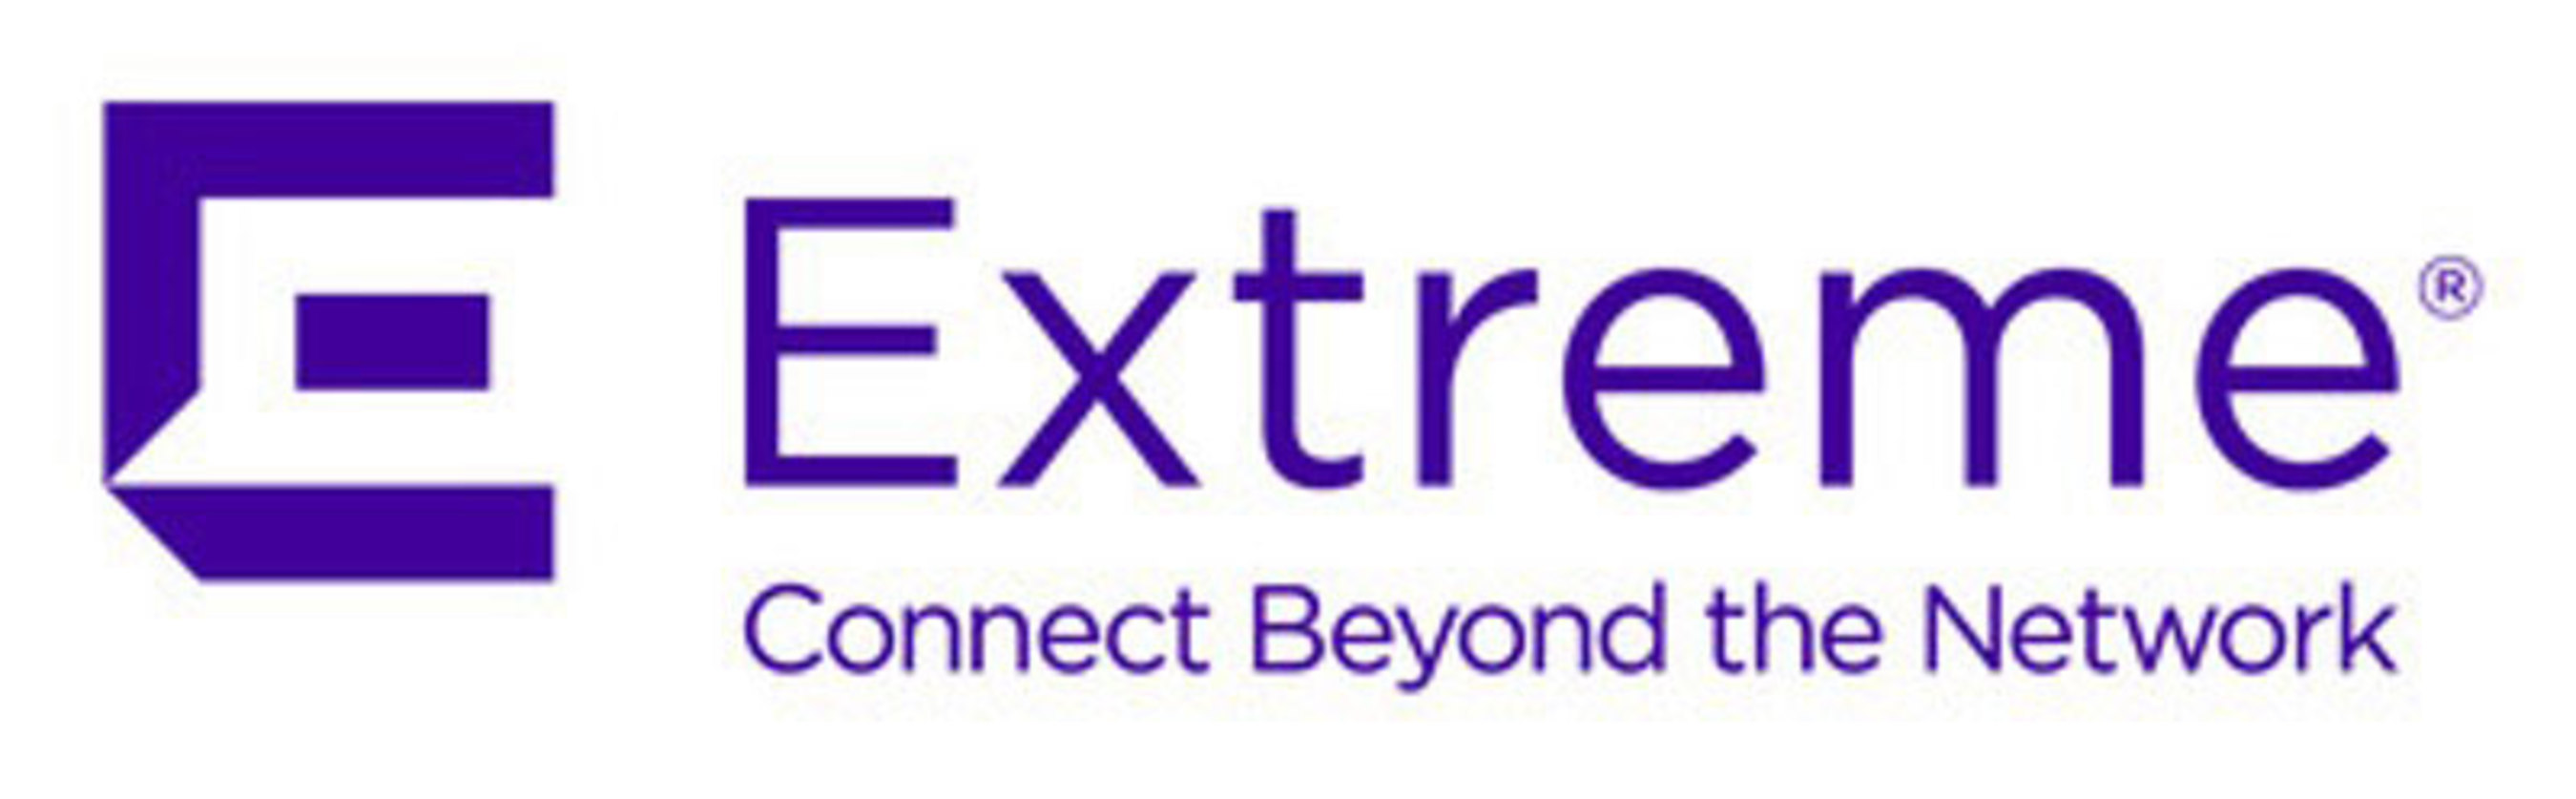 Extreme Networks Agrees to Acquire Wireless LAN Business from Zebra